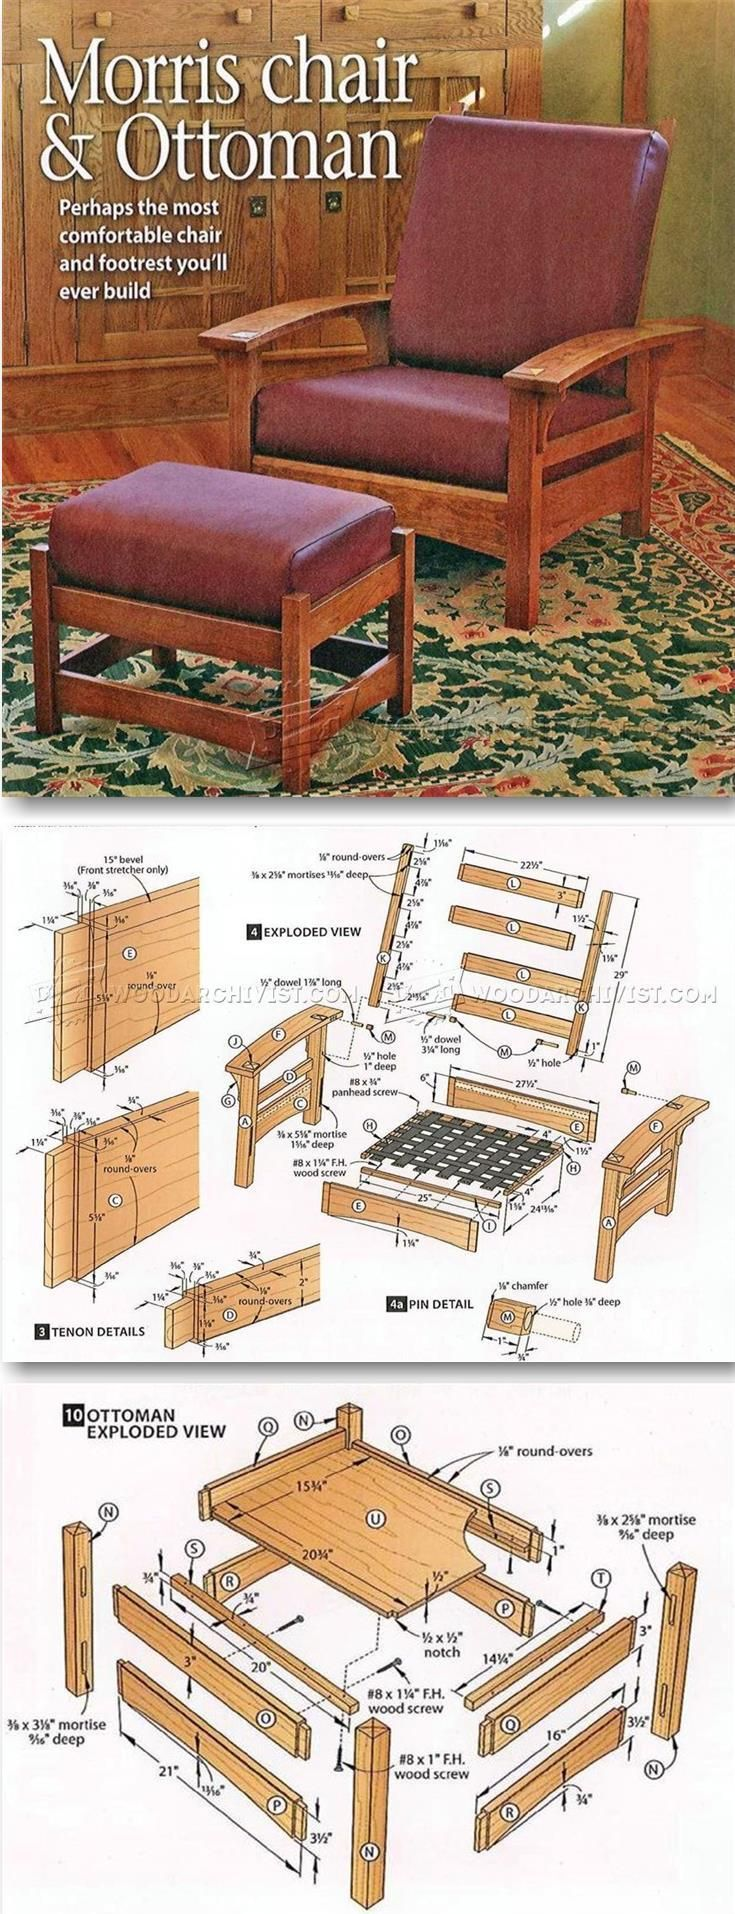 Morris chair plans outdoor - Morris Chair And Ottoman Plans Furniture Plans And Projects Woodarchivist Com